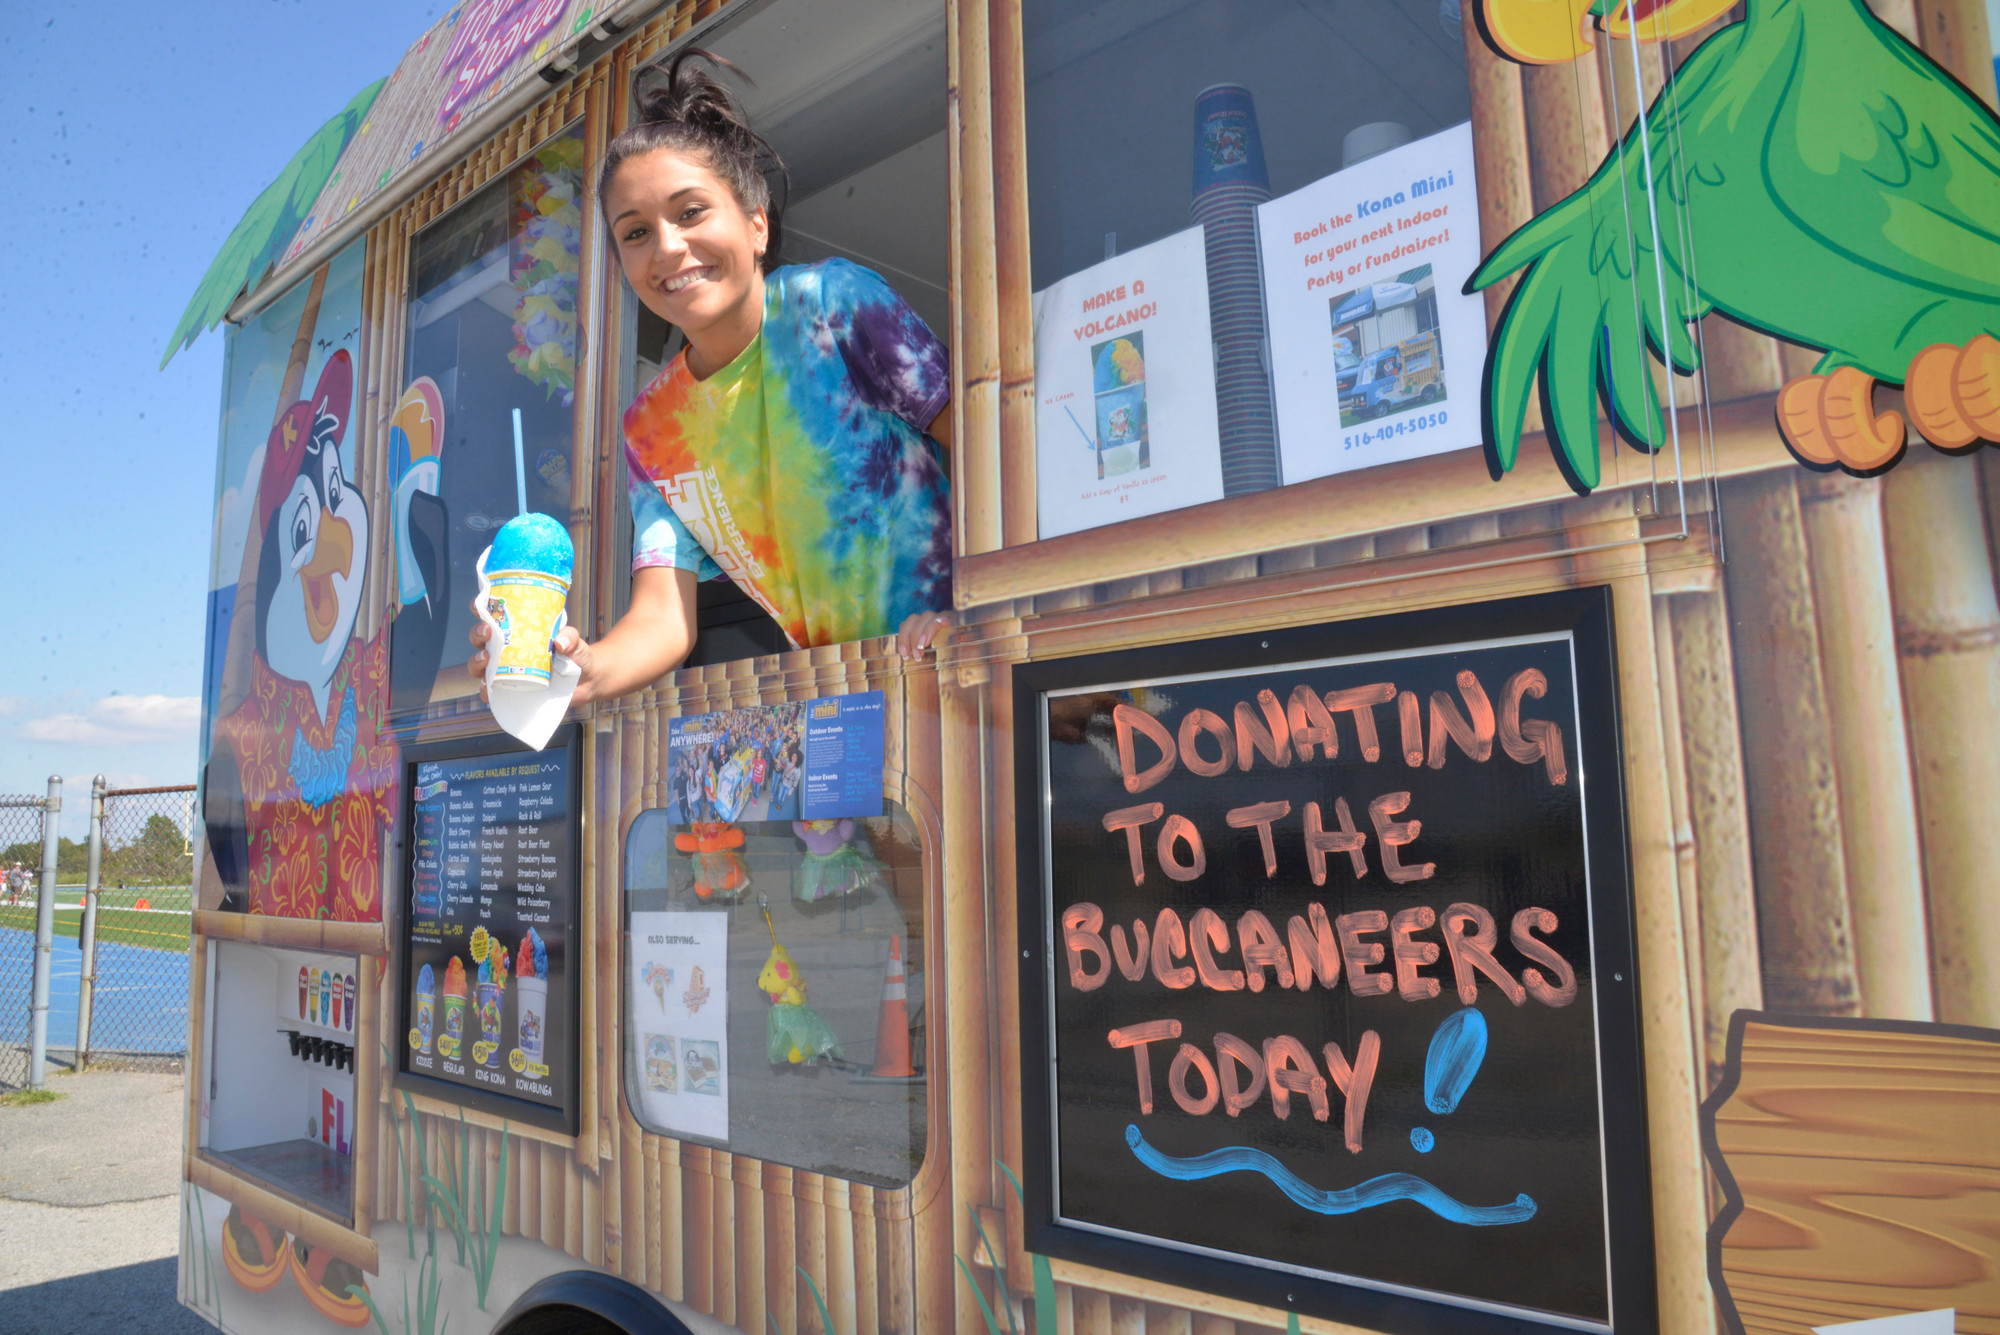 Kona Ice donated its proceeds from the day's sales to the to Inwood Buccaneers. Jenna Maldonado served up a refreshing ice treat.